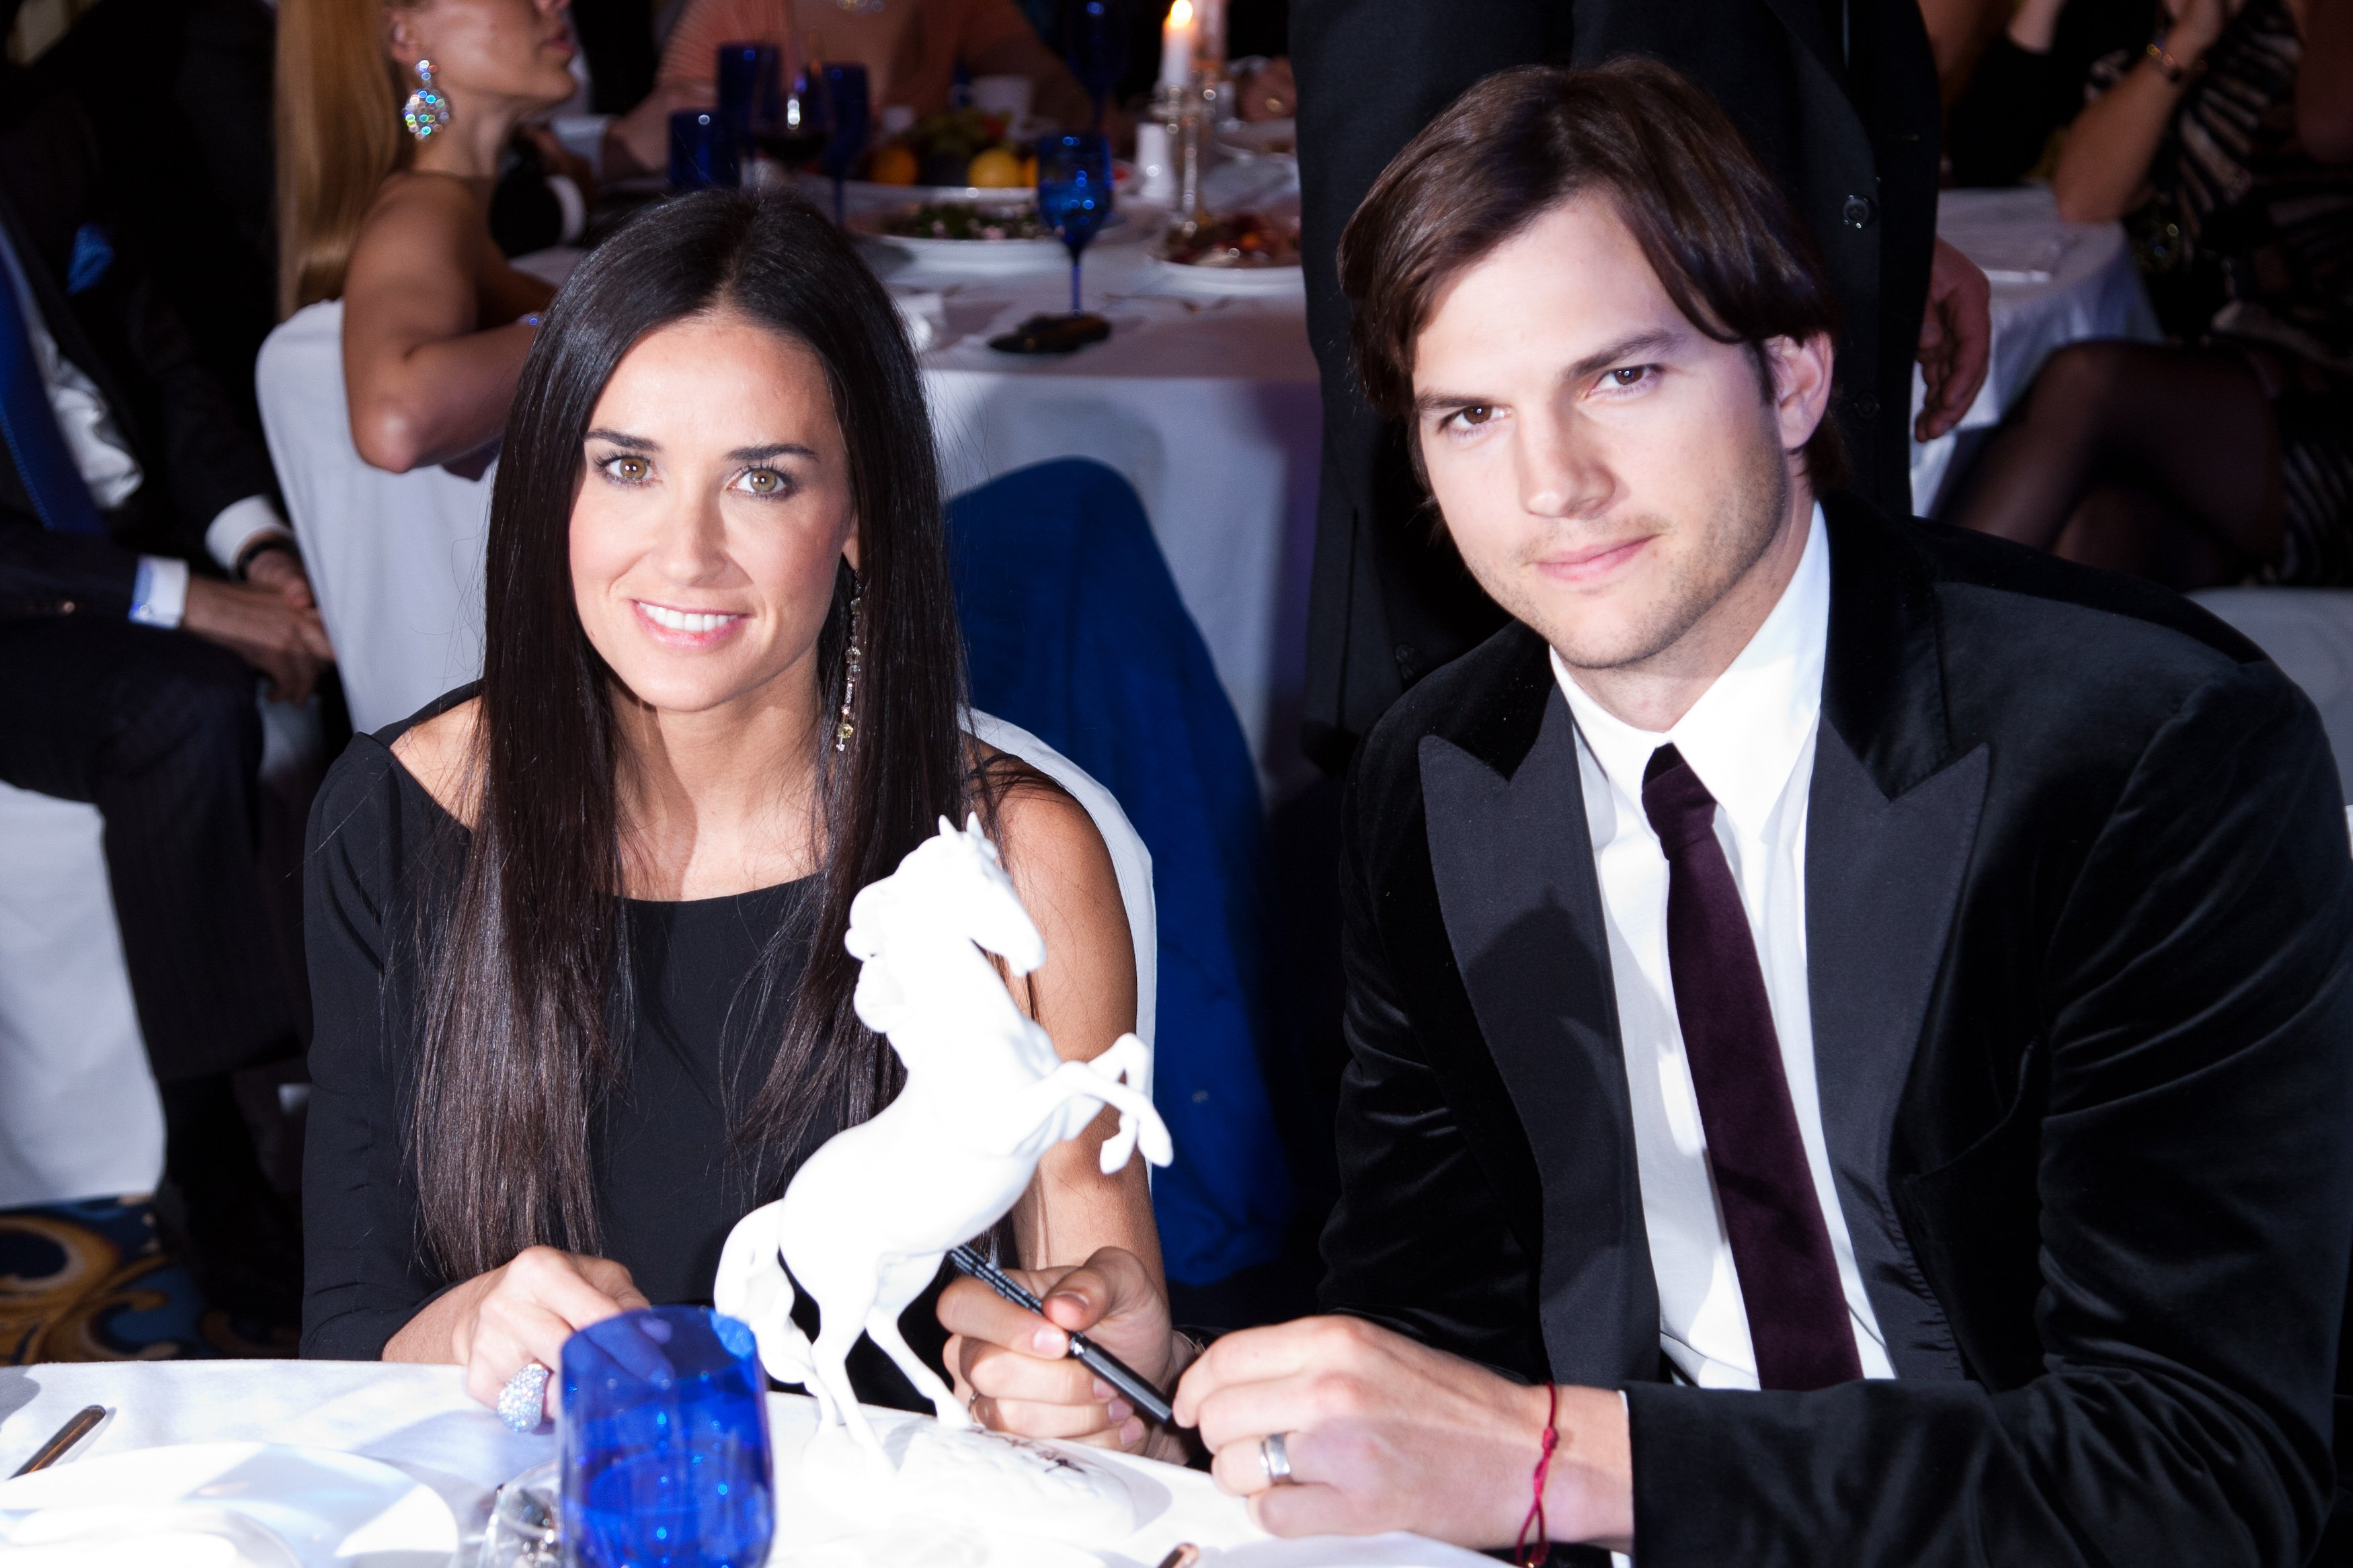 Demi Moore and Ashton Kutcher attend the Charity Gala at The Ritz-Carlton | Source: Getty Images